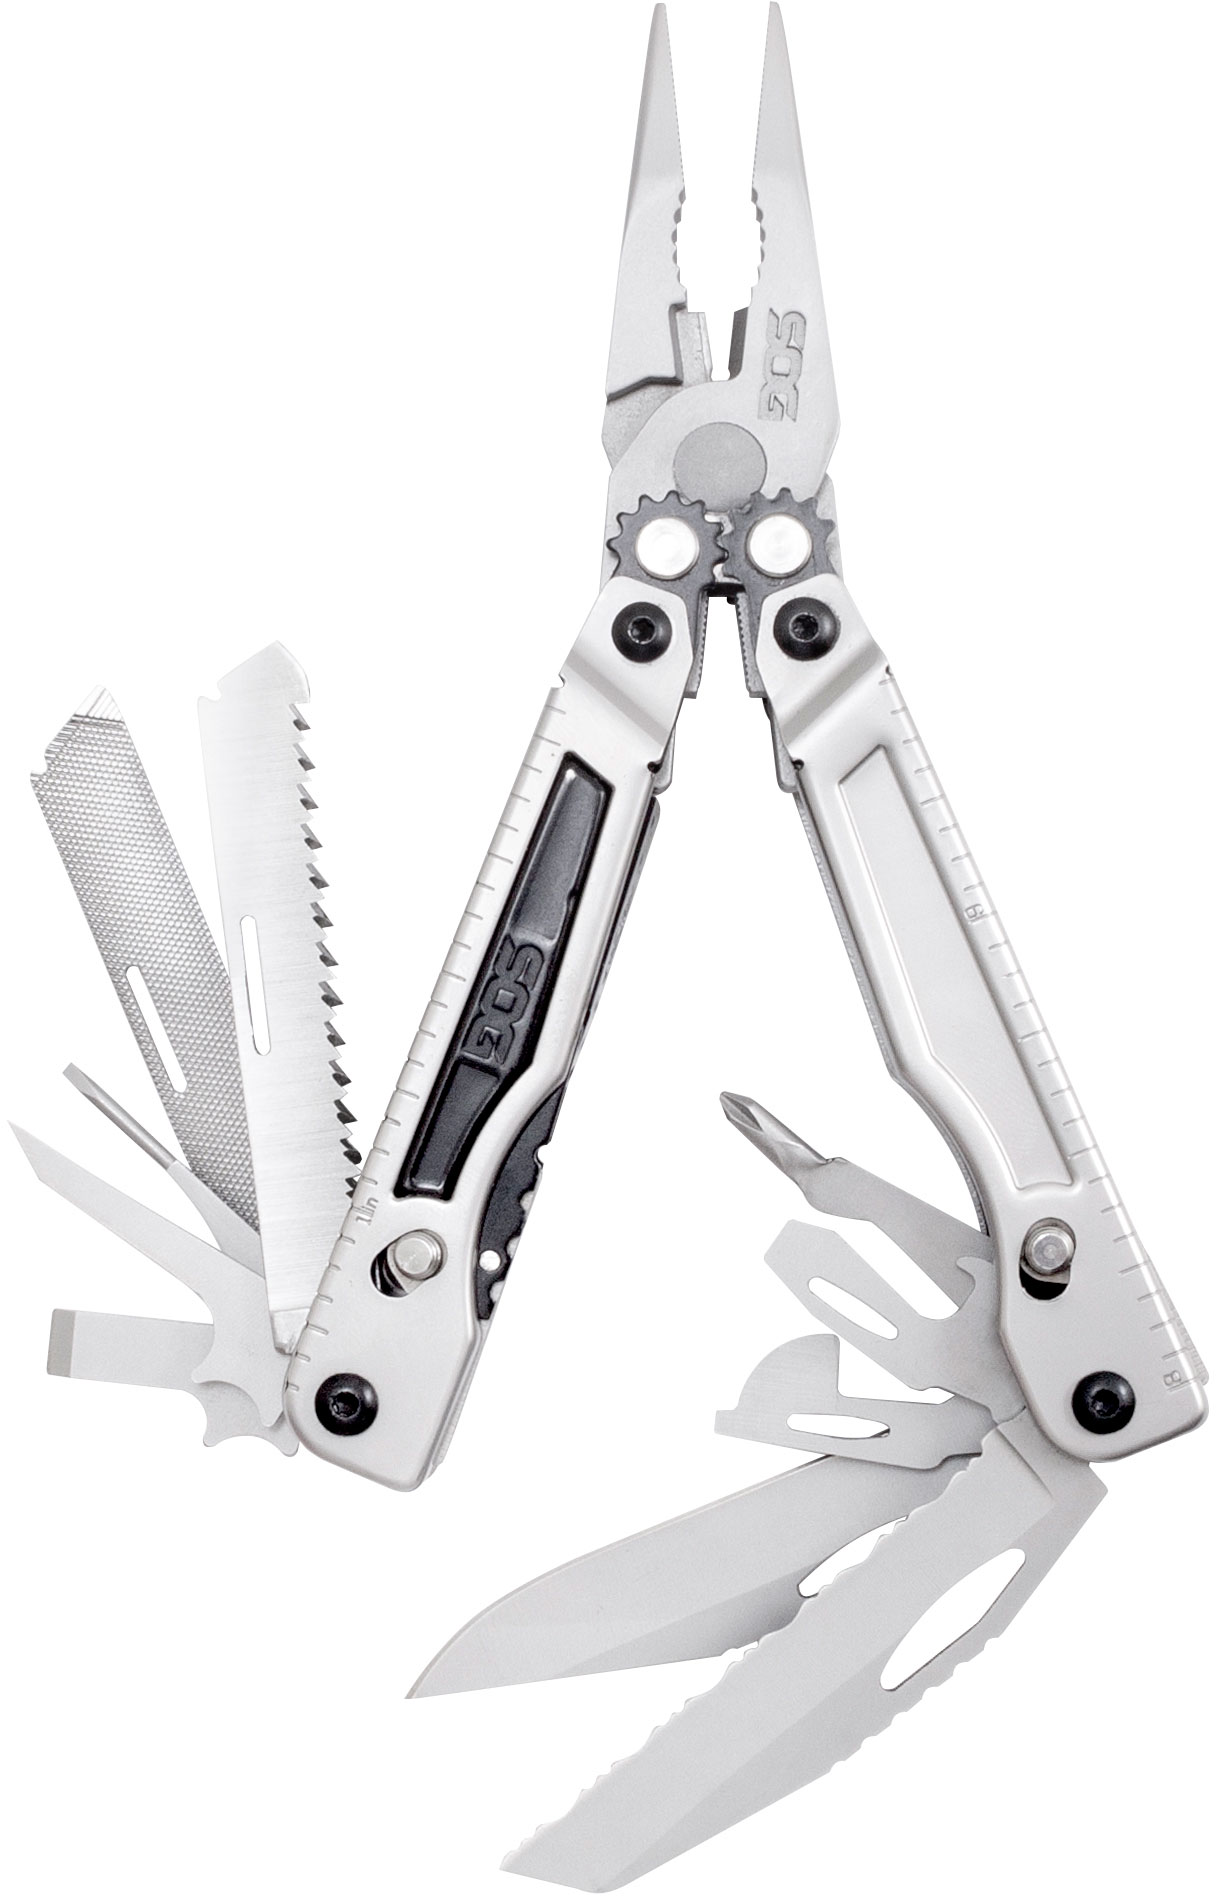 SOG PowerPlay Multi-Tool with Nylon Sheath and Extra Hex Bits